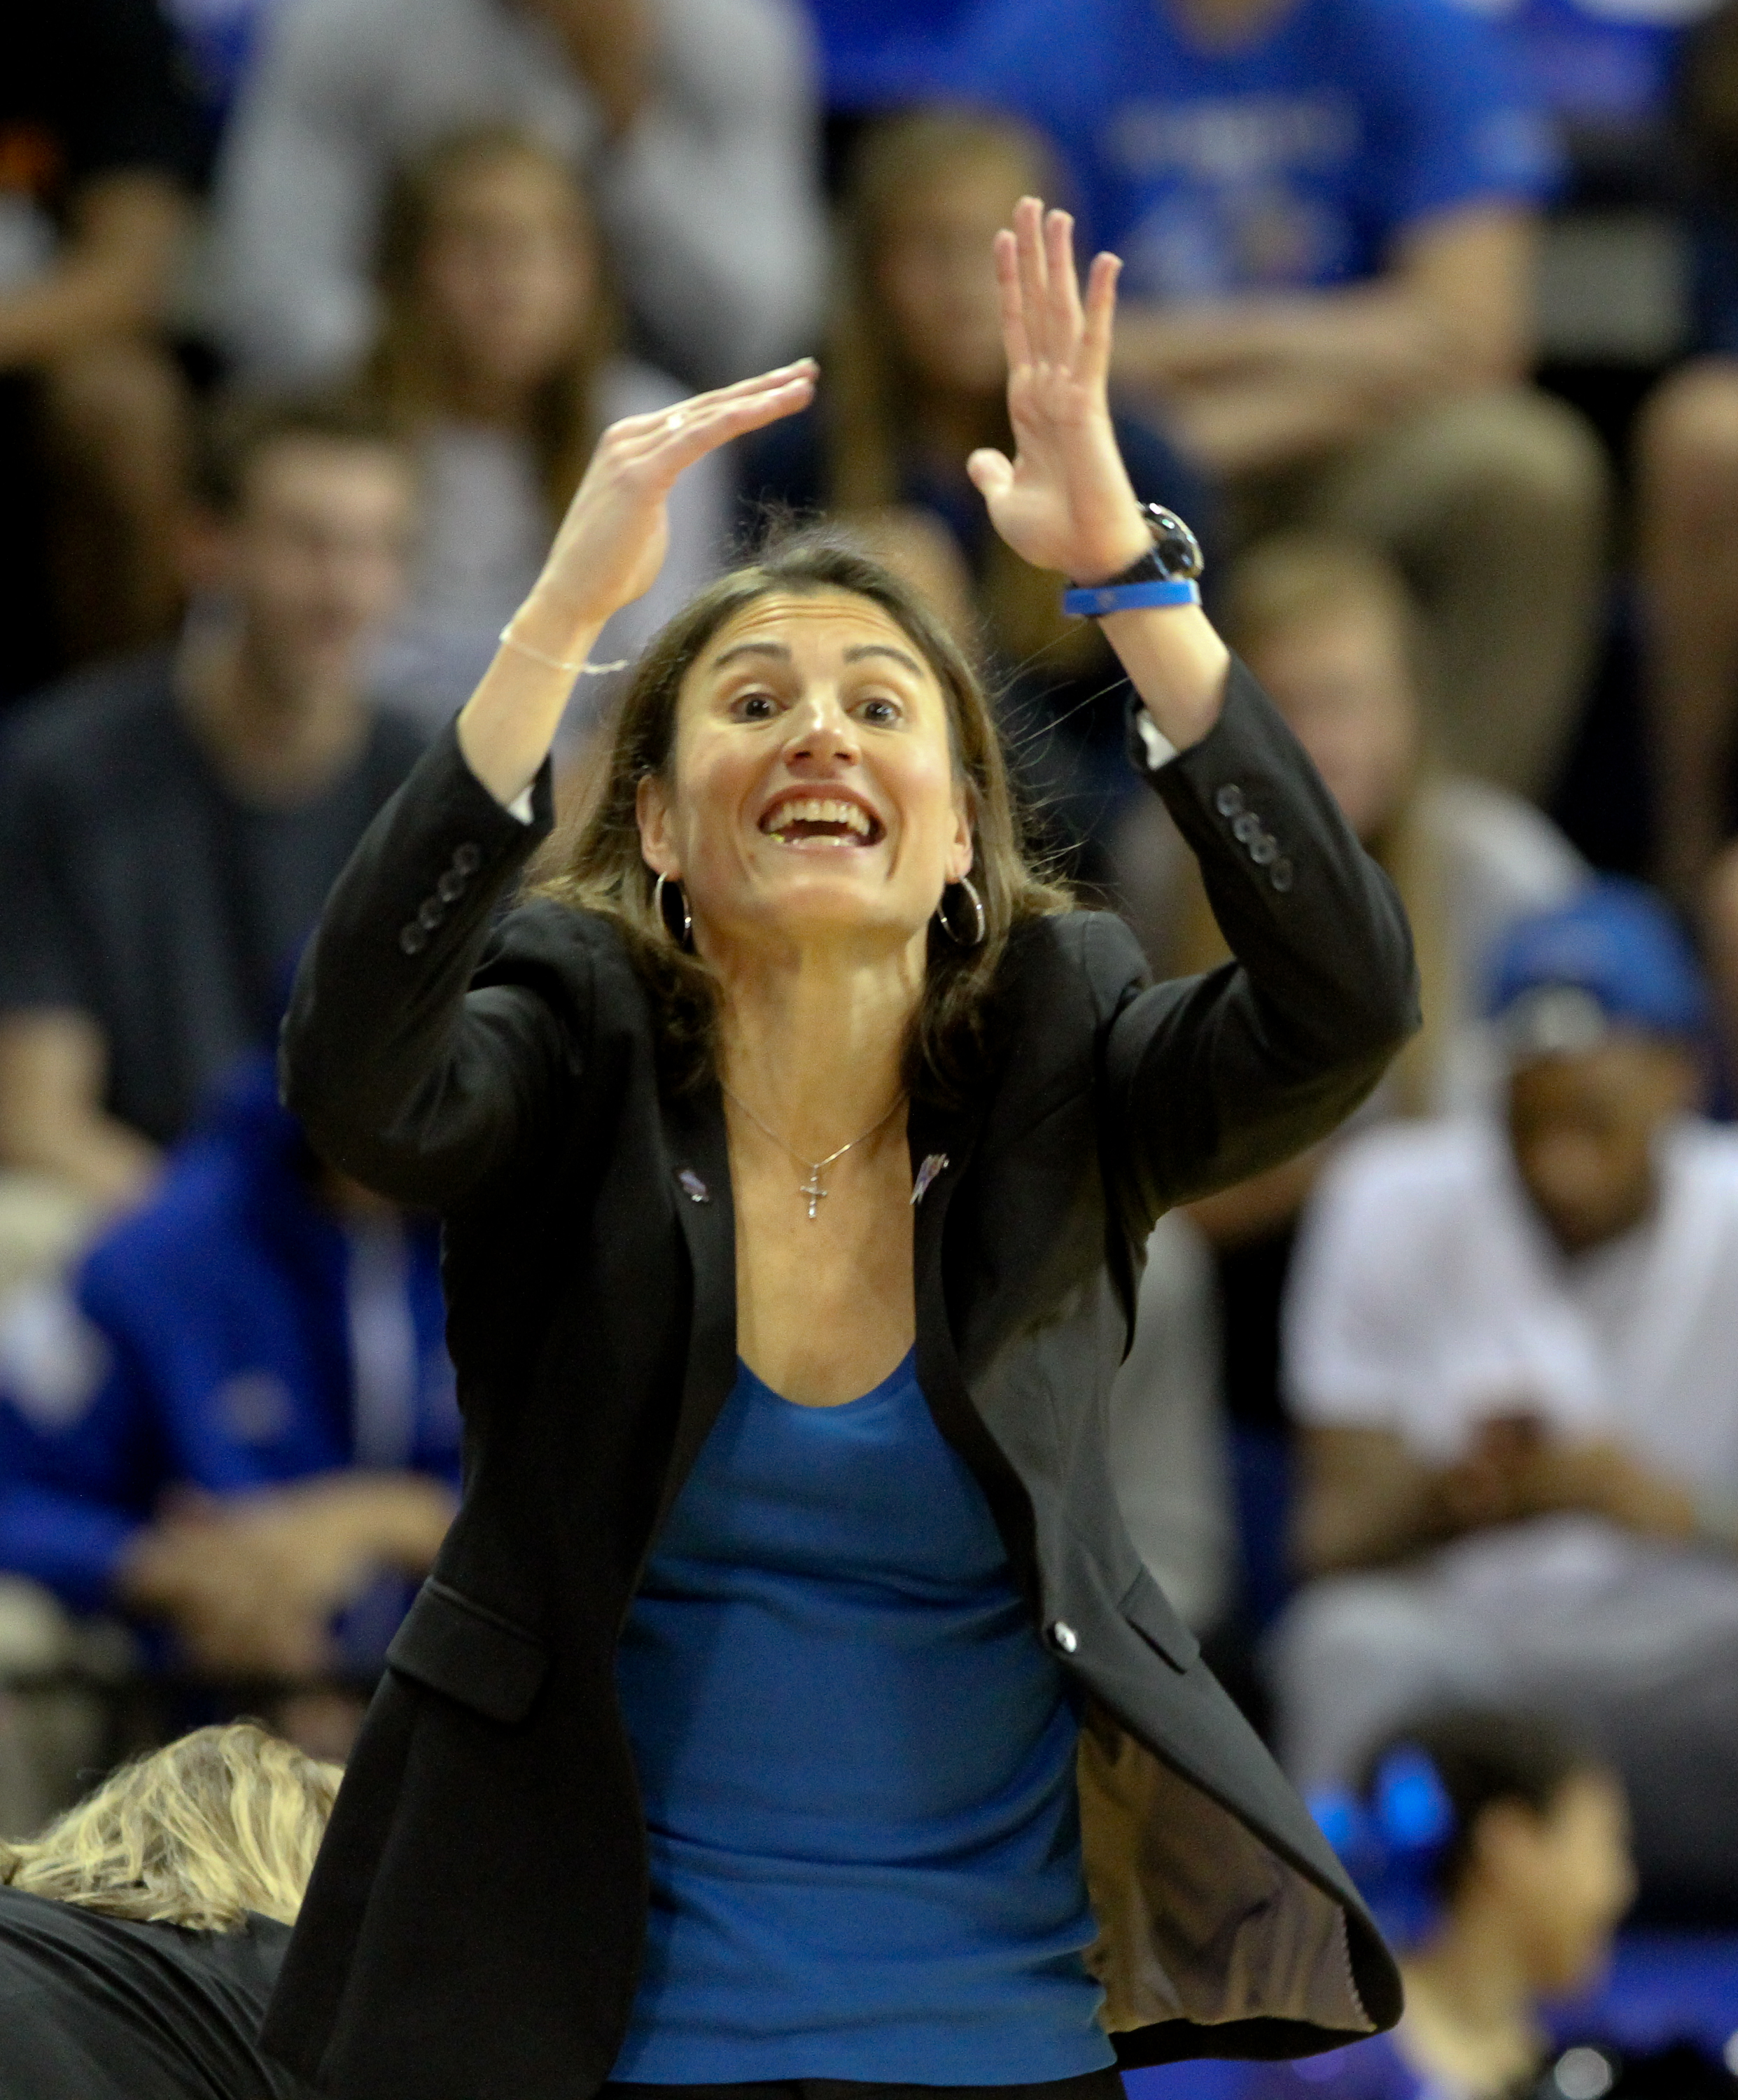 UNC Asheville's head coach Brenda Mock Kirkpatrick yells out a play during the first half of the championship game of the NCAA women's Big South college basketball tournament in Asheville, N.C., Sunday, March 13, 2016. (AP Photo/Ben Earp)